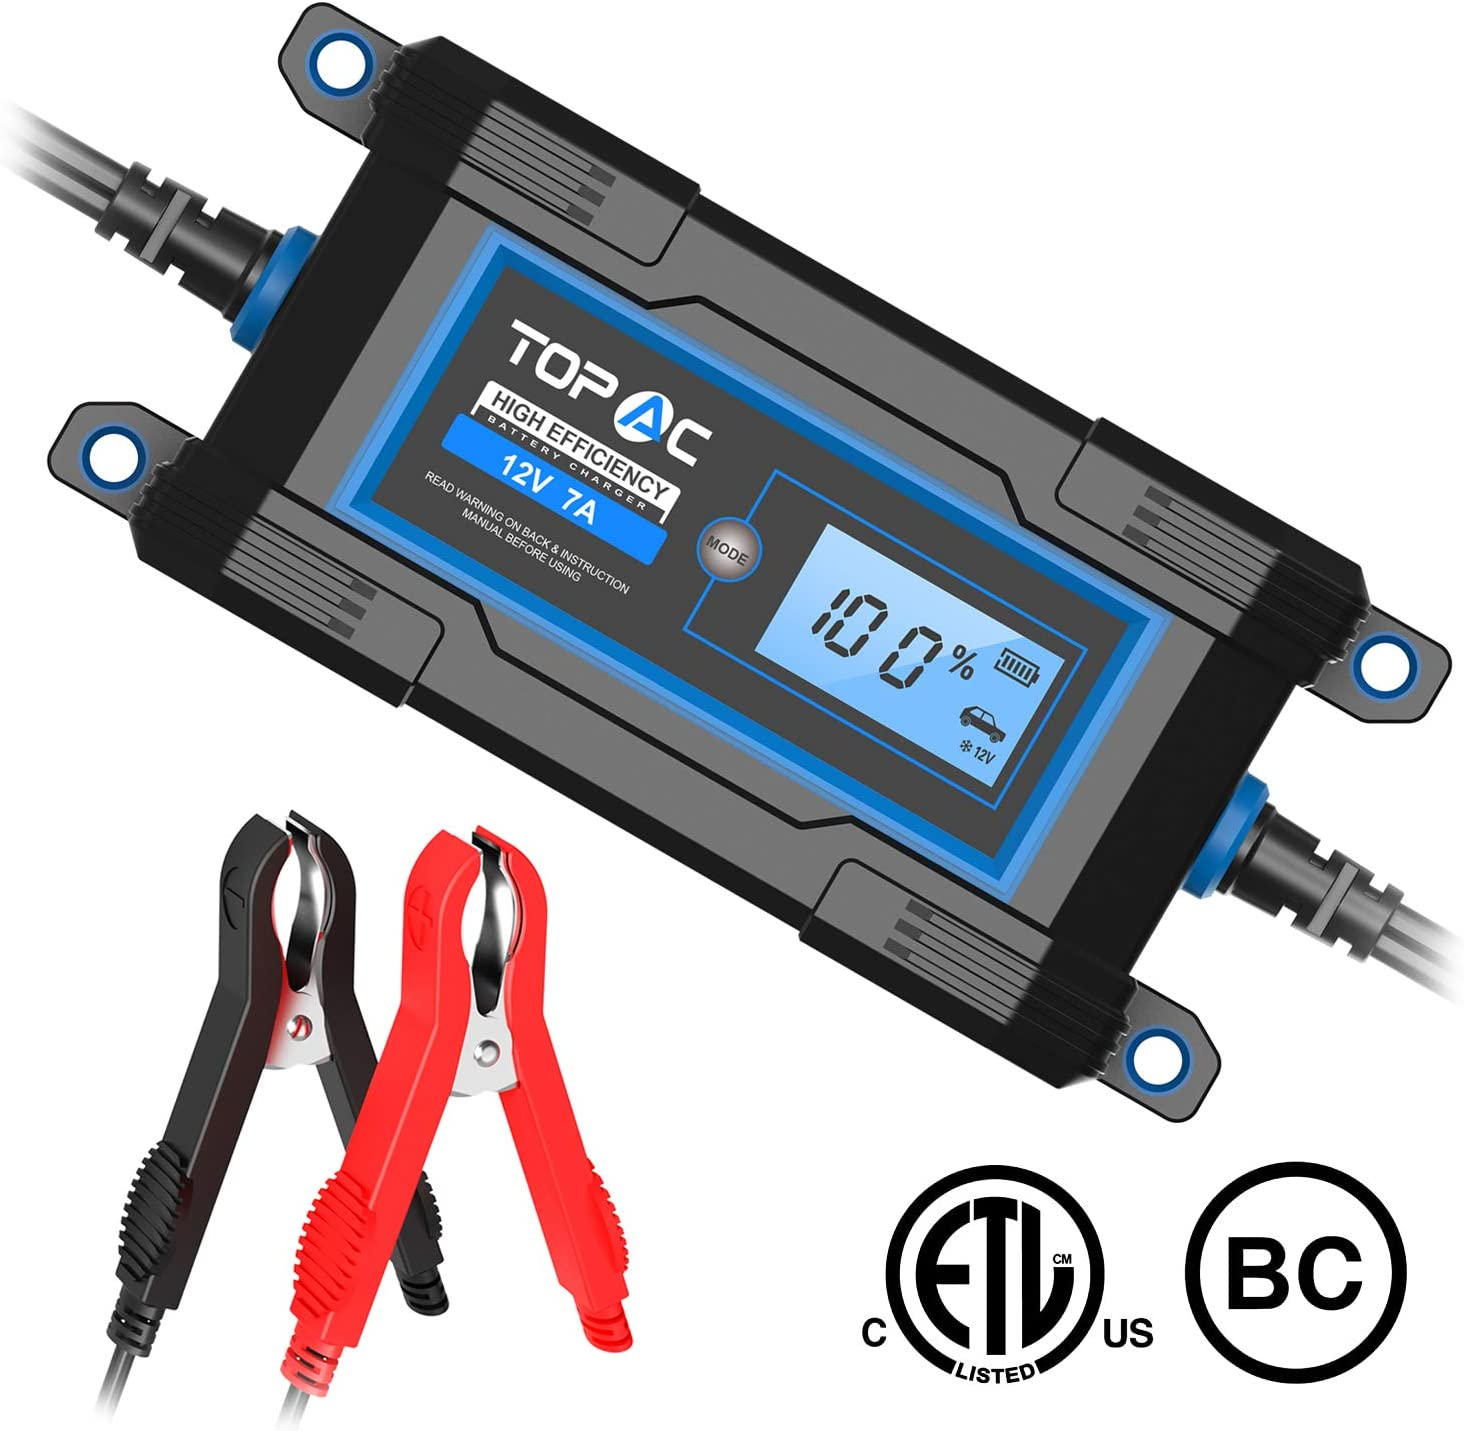 TOPAC 3.5/7A 6/12 Volt Automatic Car Battery Charger for Automotive, Motorcycle, Boat & Marine, RV, Toys, Power Tool, Lawn & Garden Battery Systems